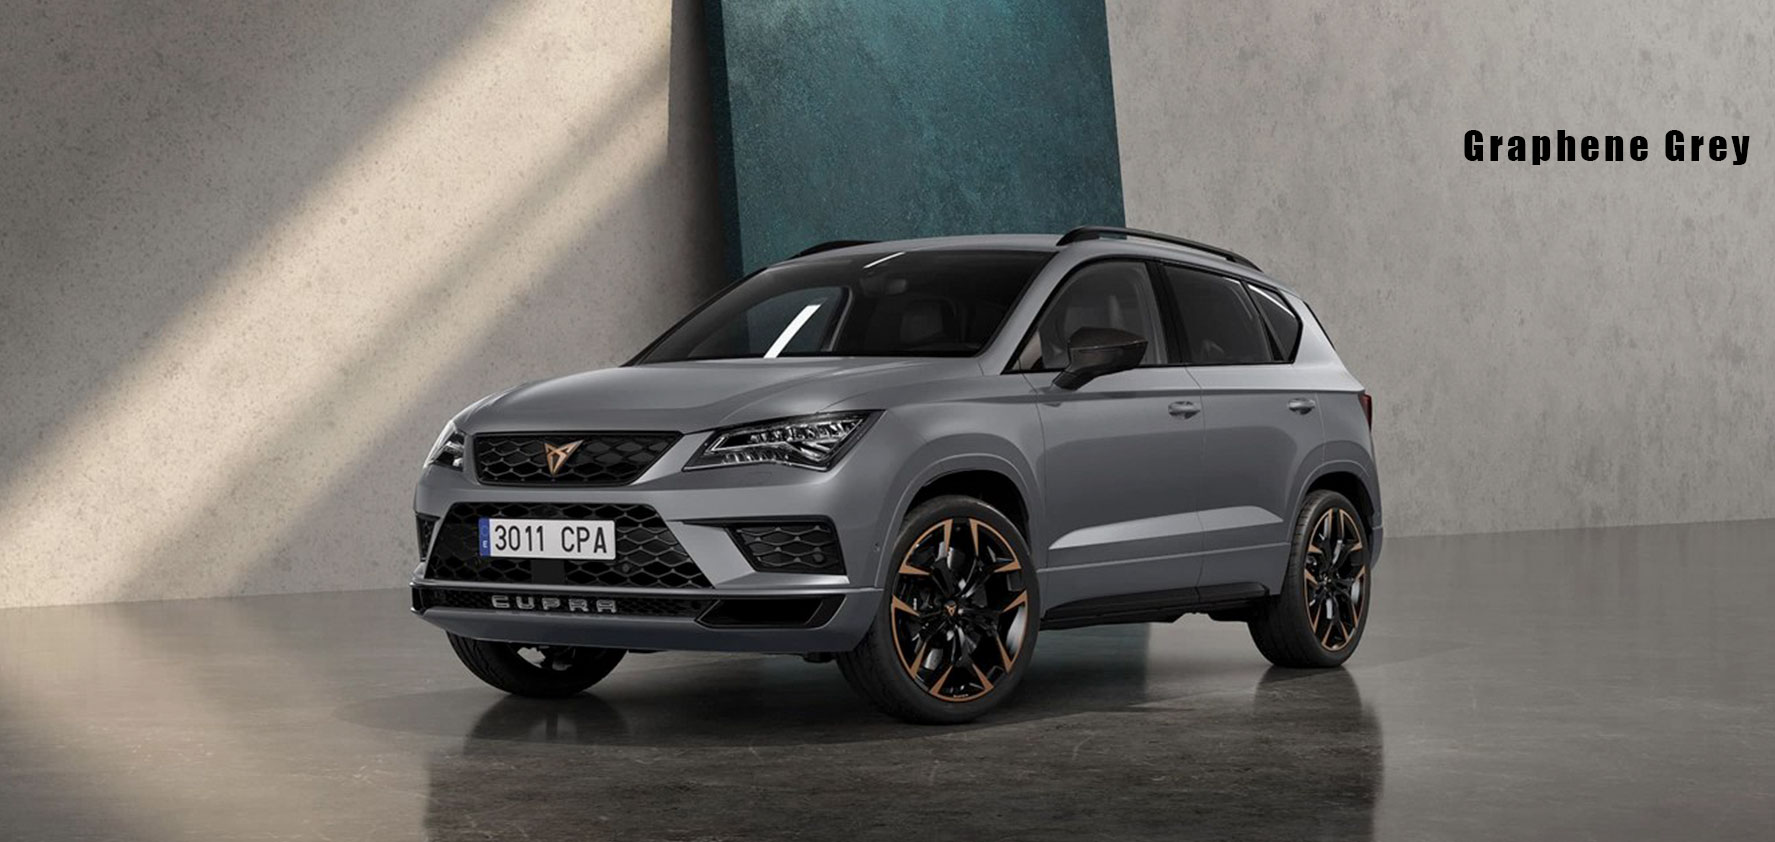 Graphene-Grey colore cupra-ateca-limited-edition-vercelli-autotrend-serravalle-sesia